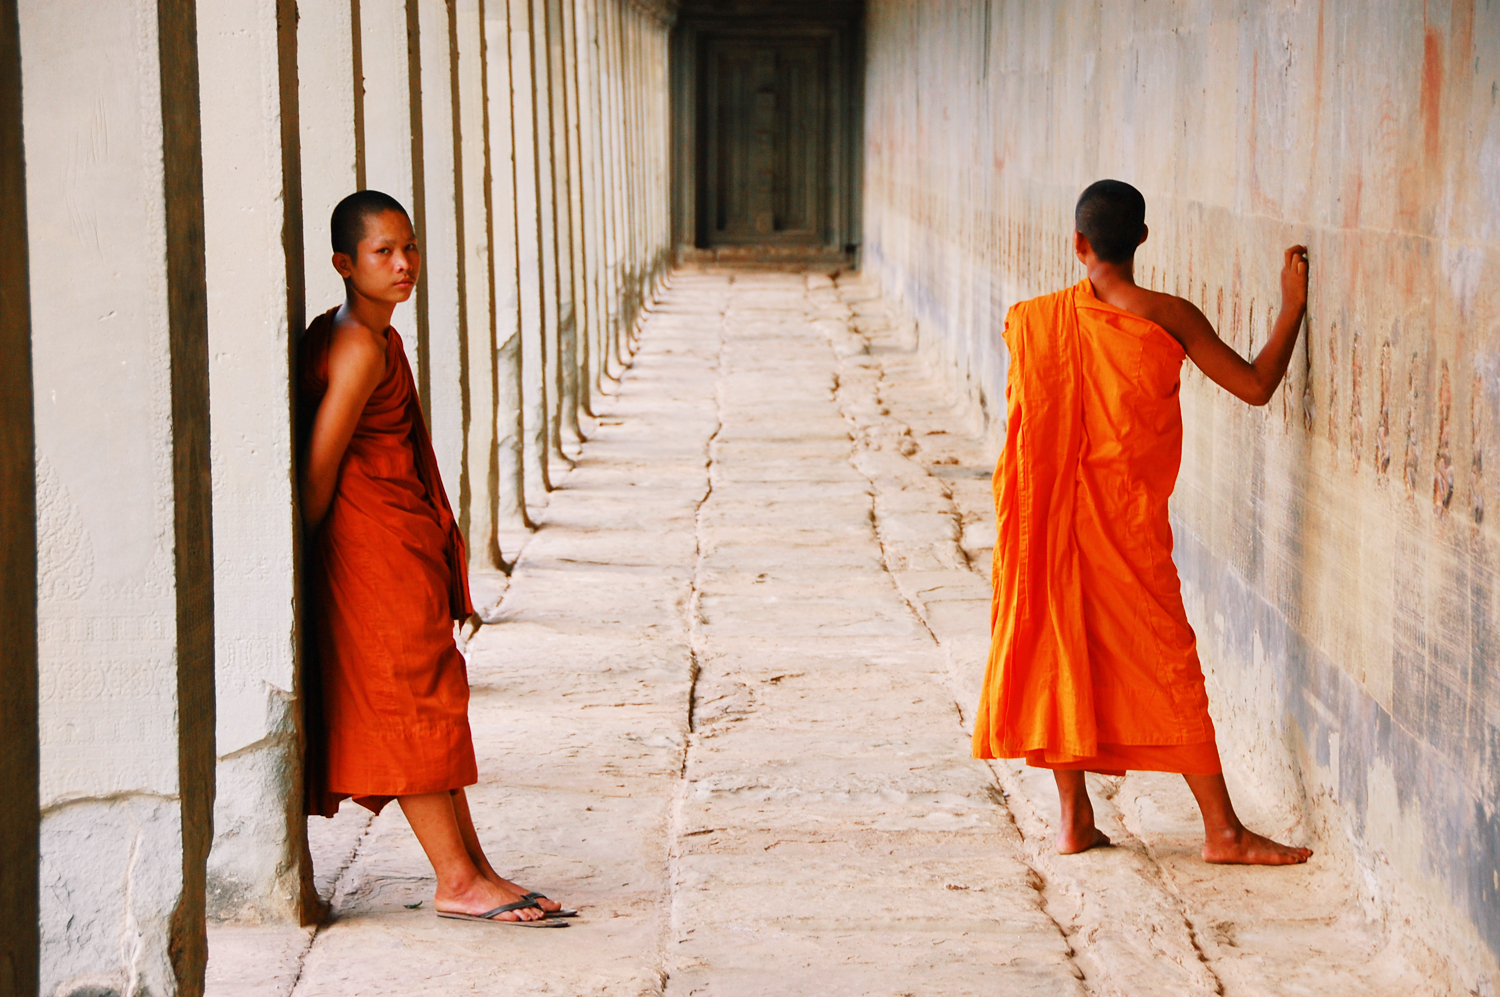 MONKS ANGKOR WAT BY ONIN LORENTE